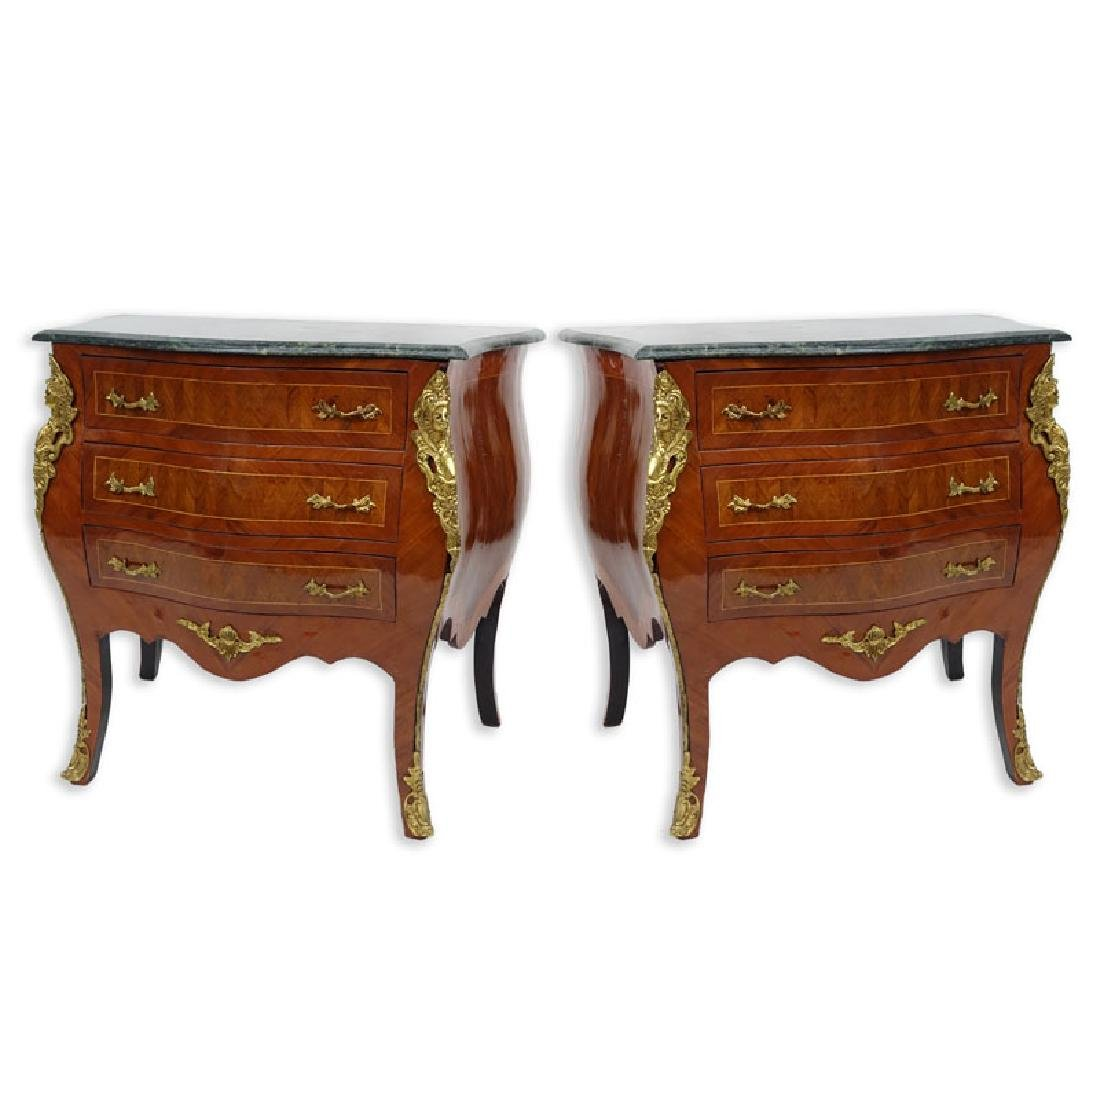 Pair of 20th Century Louis XVI Style Marquetry Inlaid - 3